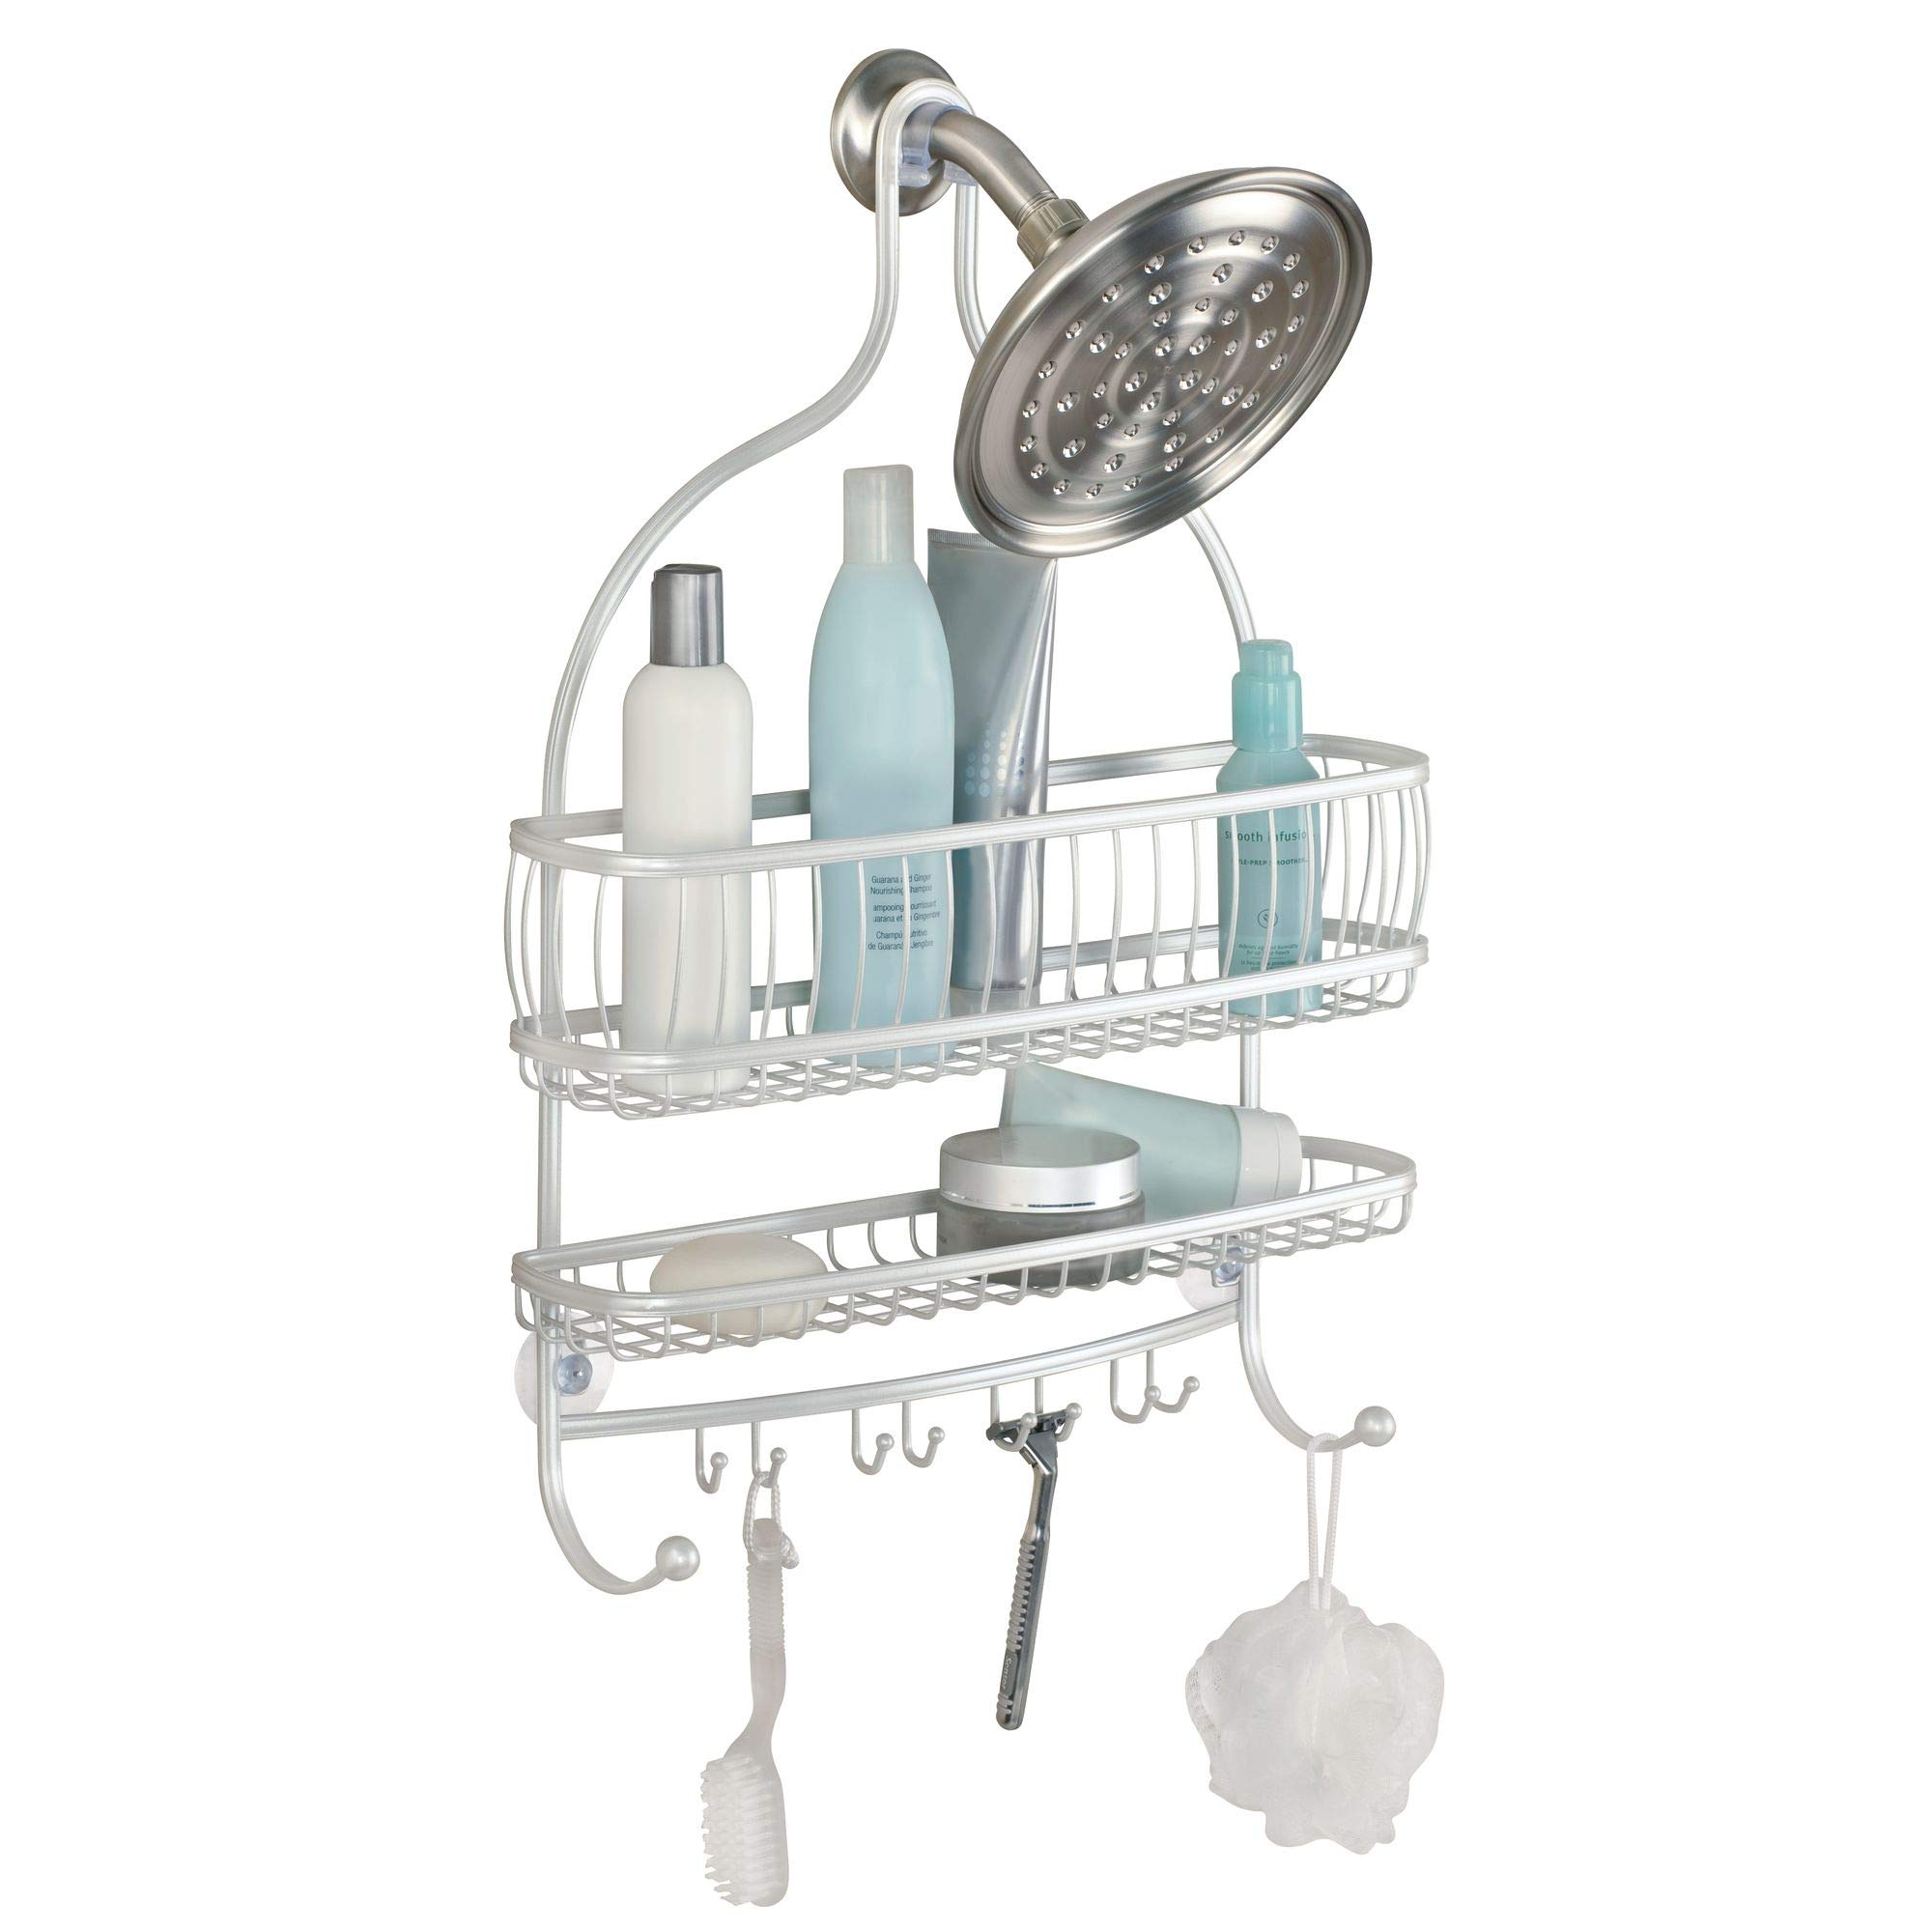 """CDM product iDesign York Metal Extra Wide Hanging Shower Caddy for Shampoo, Conditioner, and Soap with Hooks for Razors, Towels, Loofahs, and More, 16"""" x 4"""" x 22"""" - Pearl White big image"""